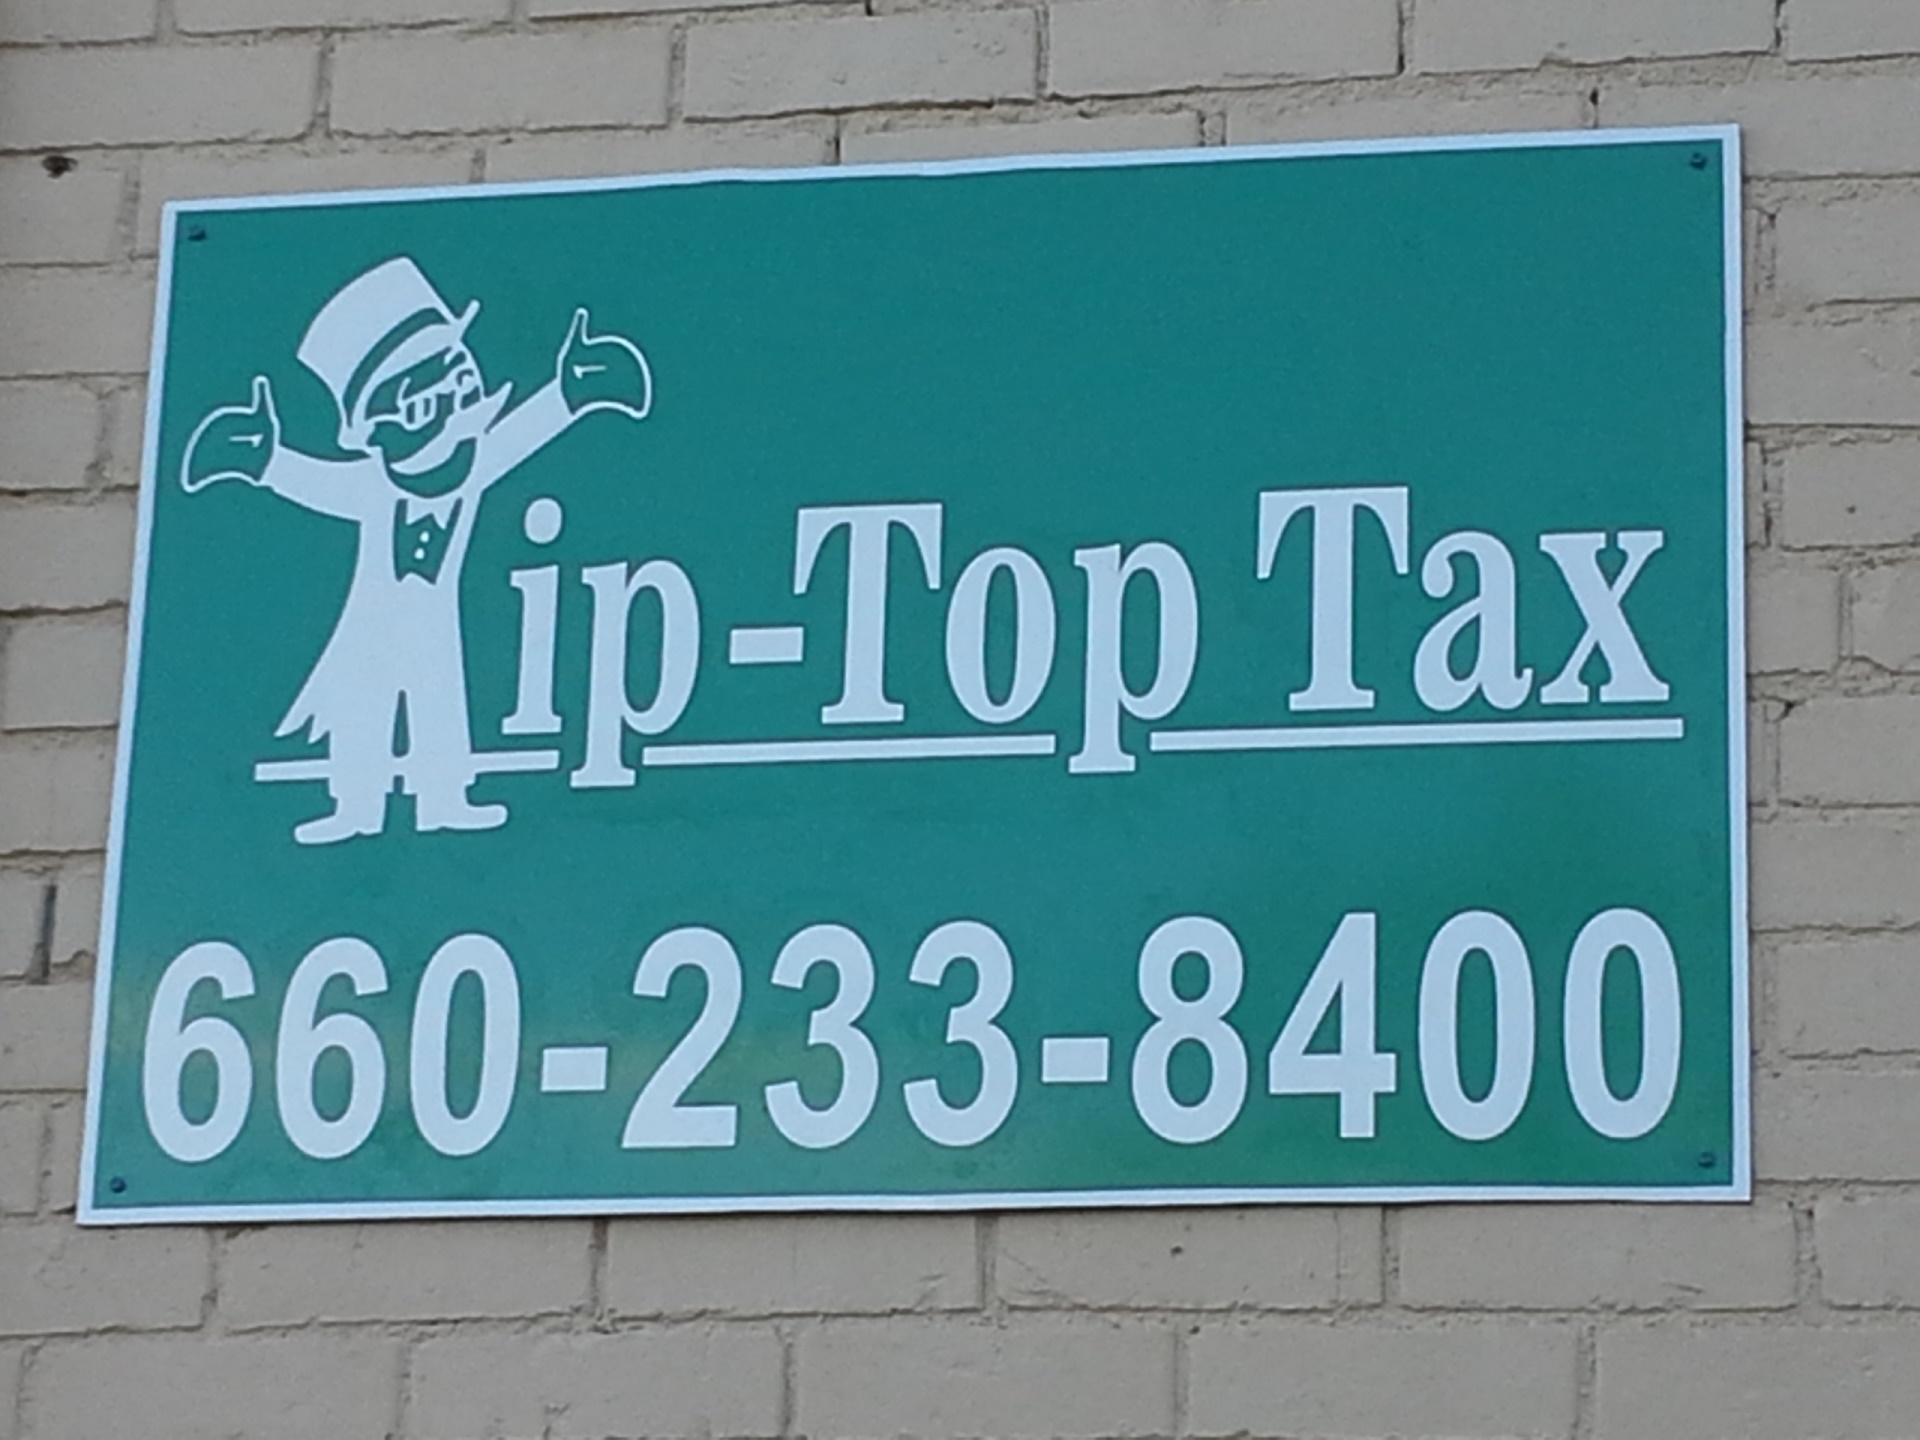 Tip Top Tax - ad image